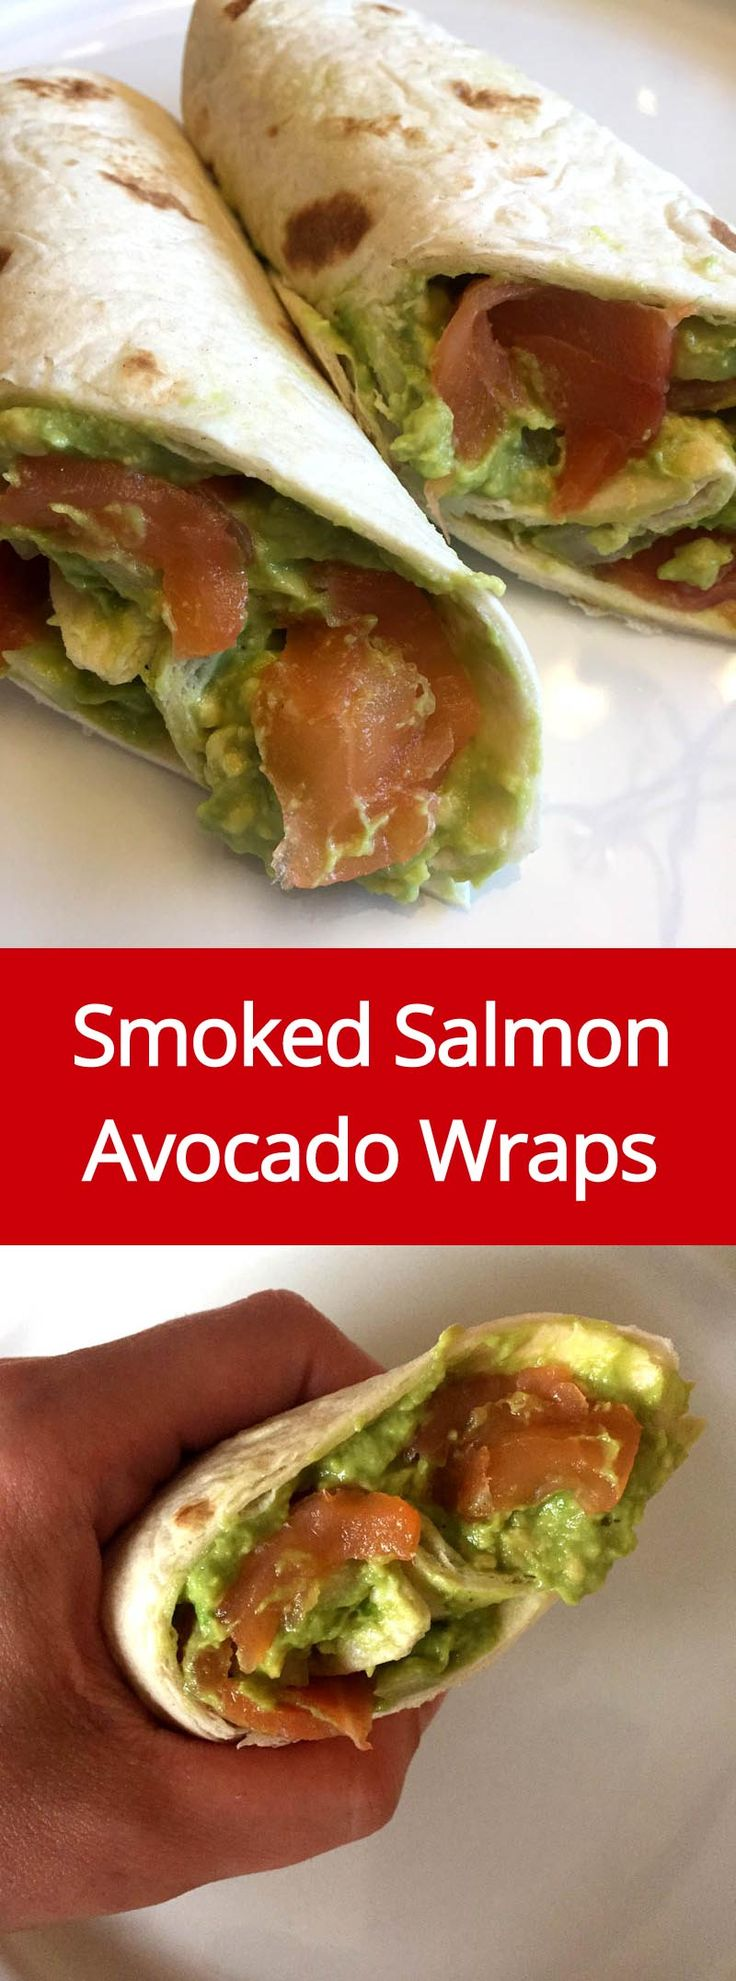 Smoked Salmon And Avocado Tortilla Rolls Recipe - these wraps are so easy to make and so yummy!   MelanieCooks.com